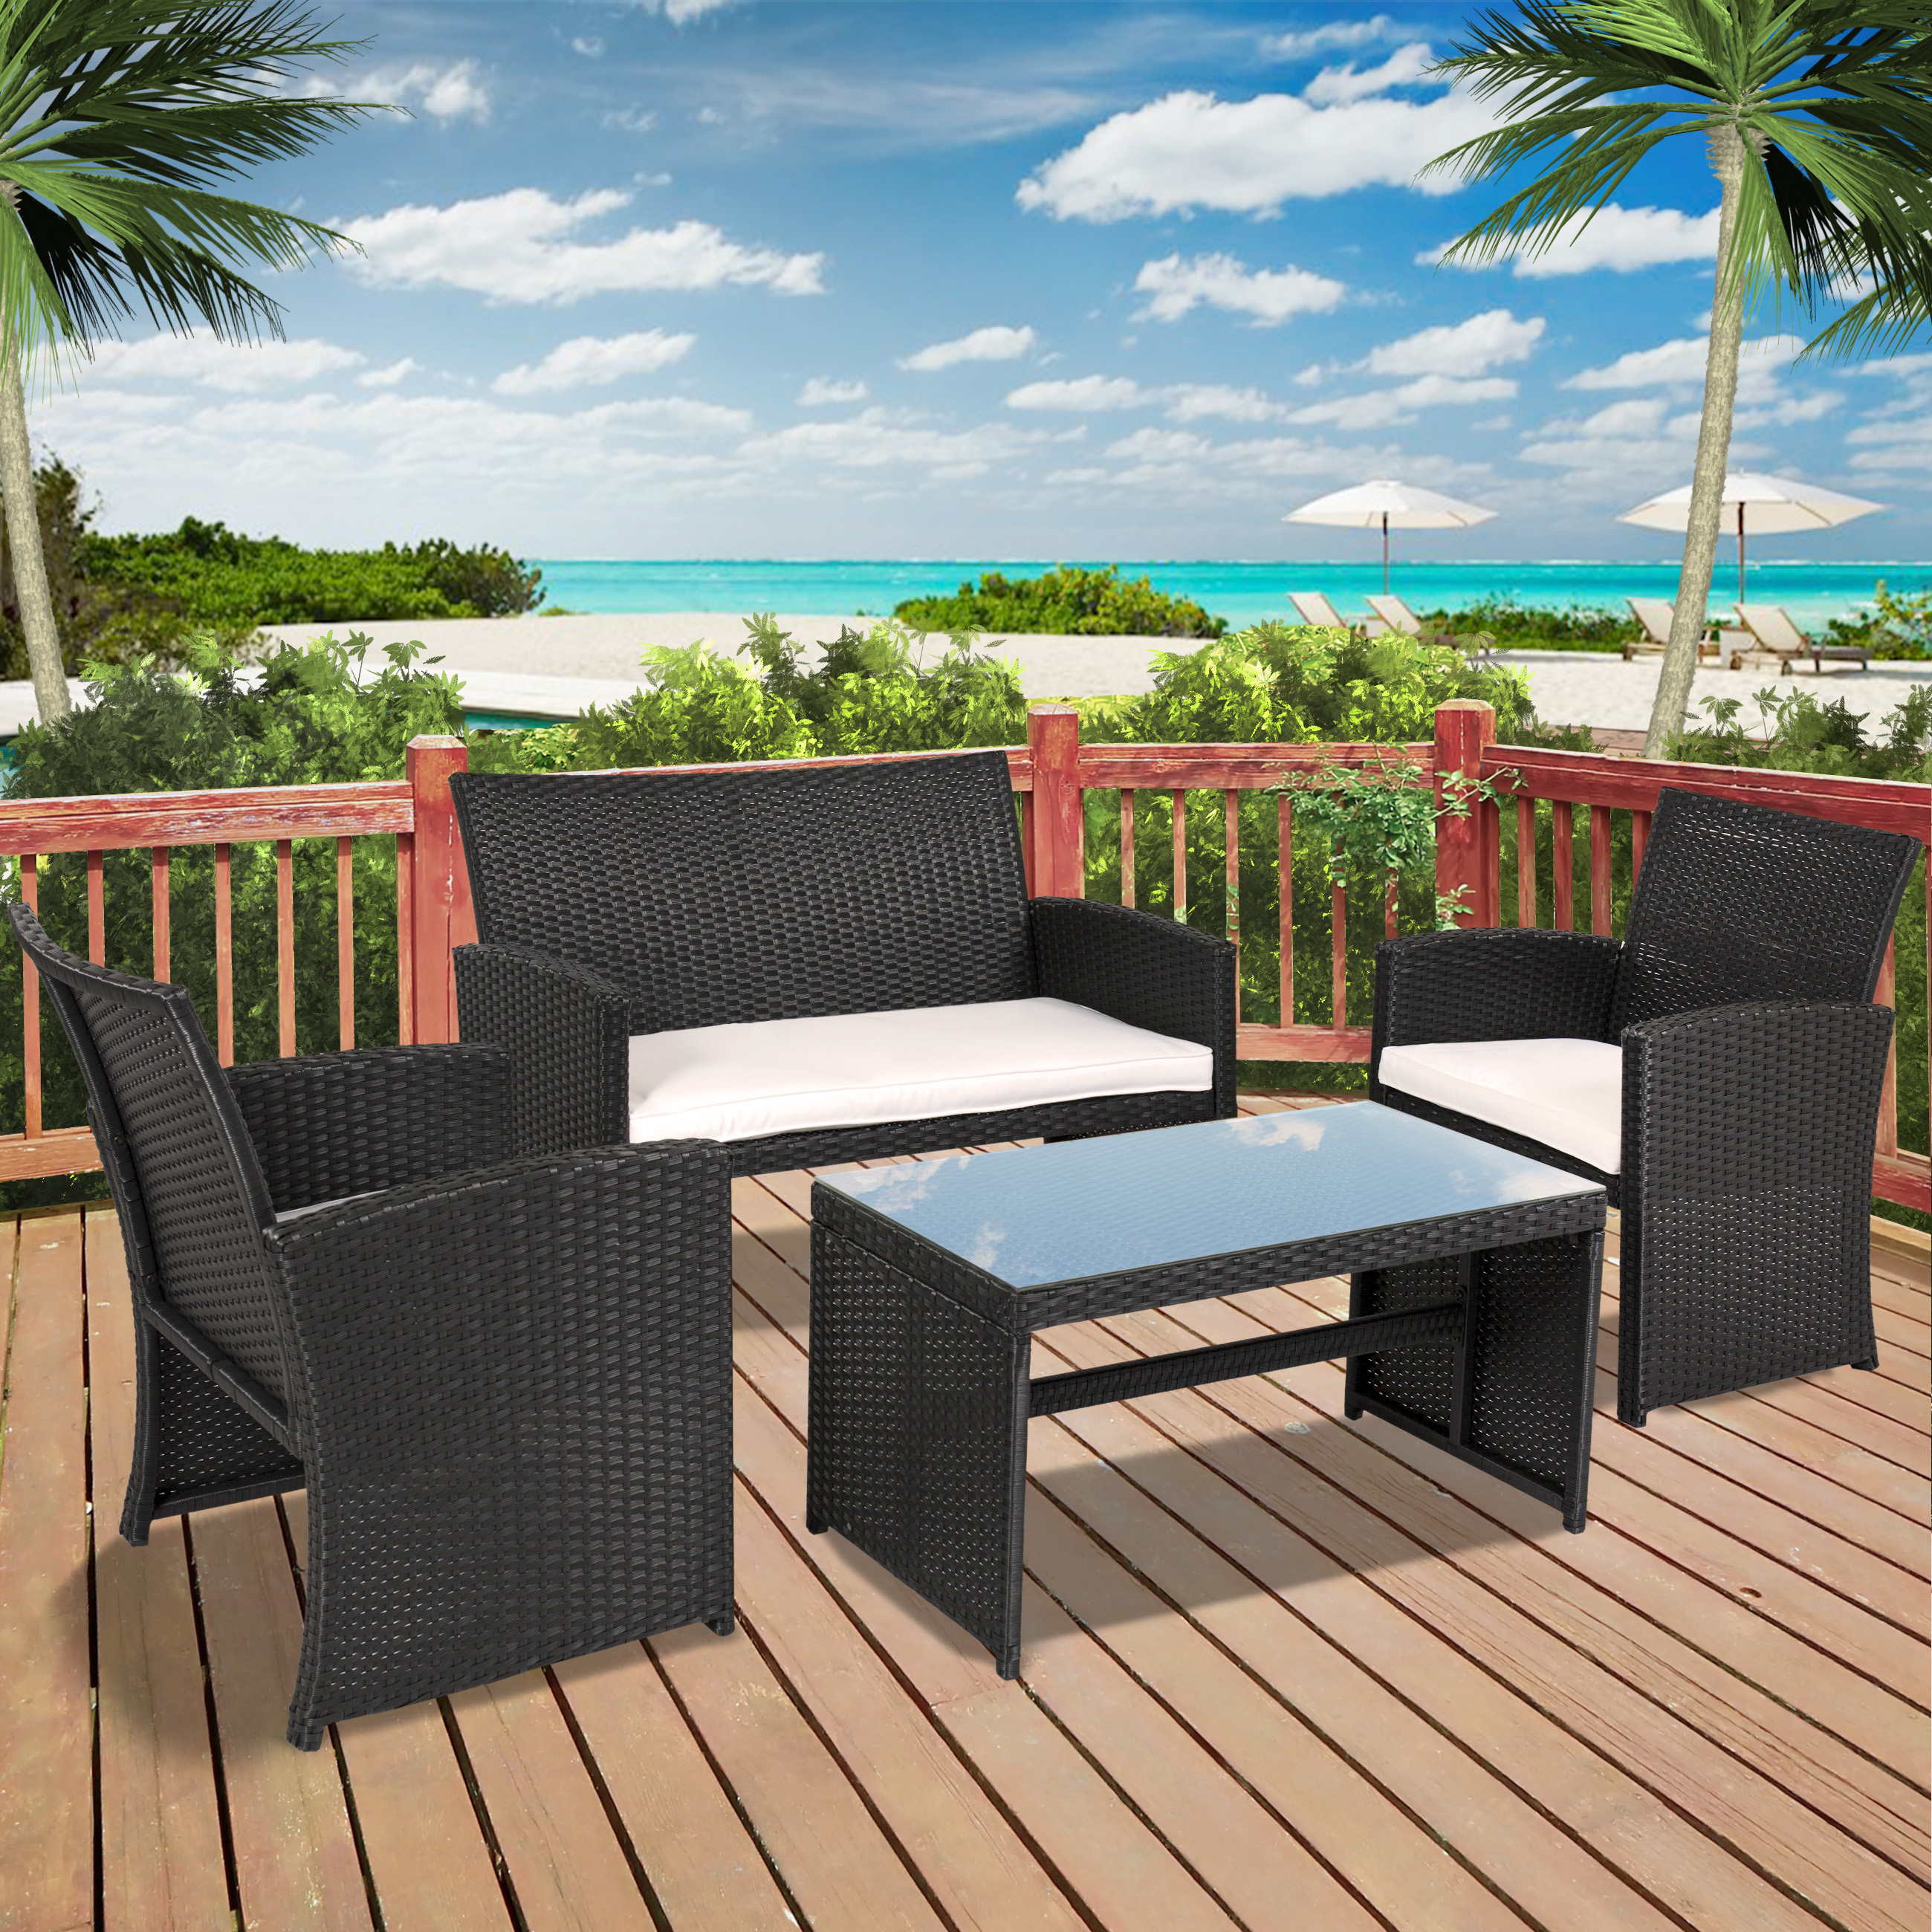 Best Choice Products 4 Piece Wicker Patio Furniture Set W Tempered Gl 3 Sofas Table Cushioned Seats Black